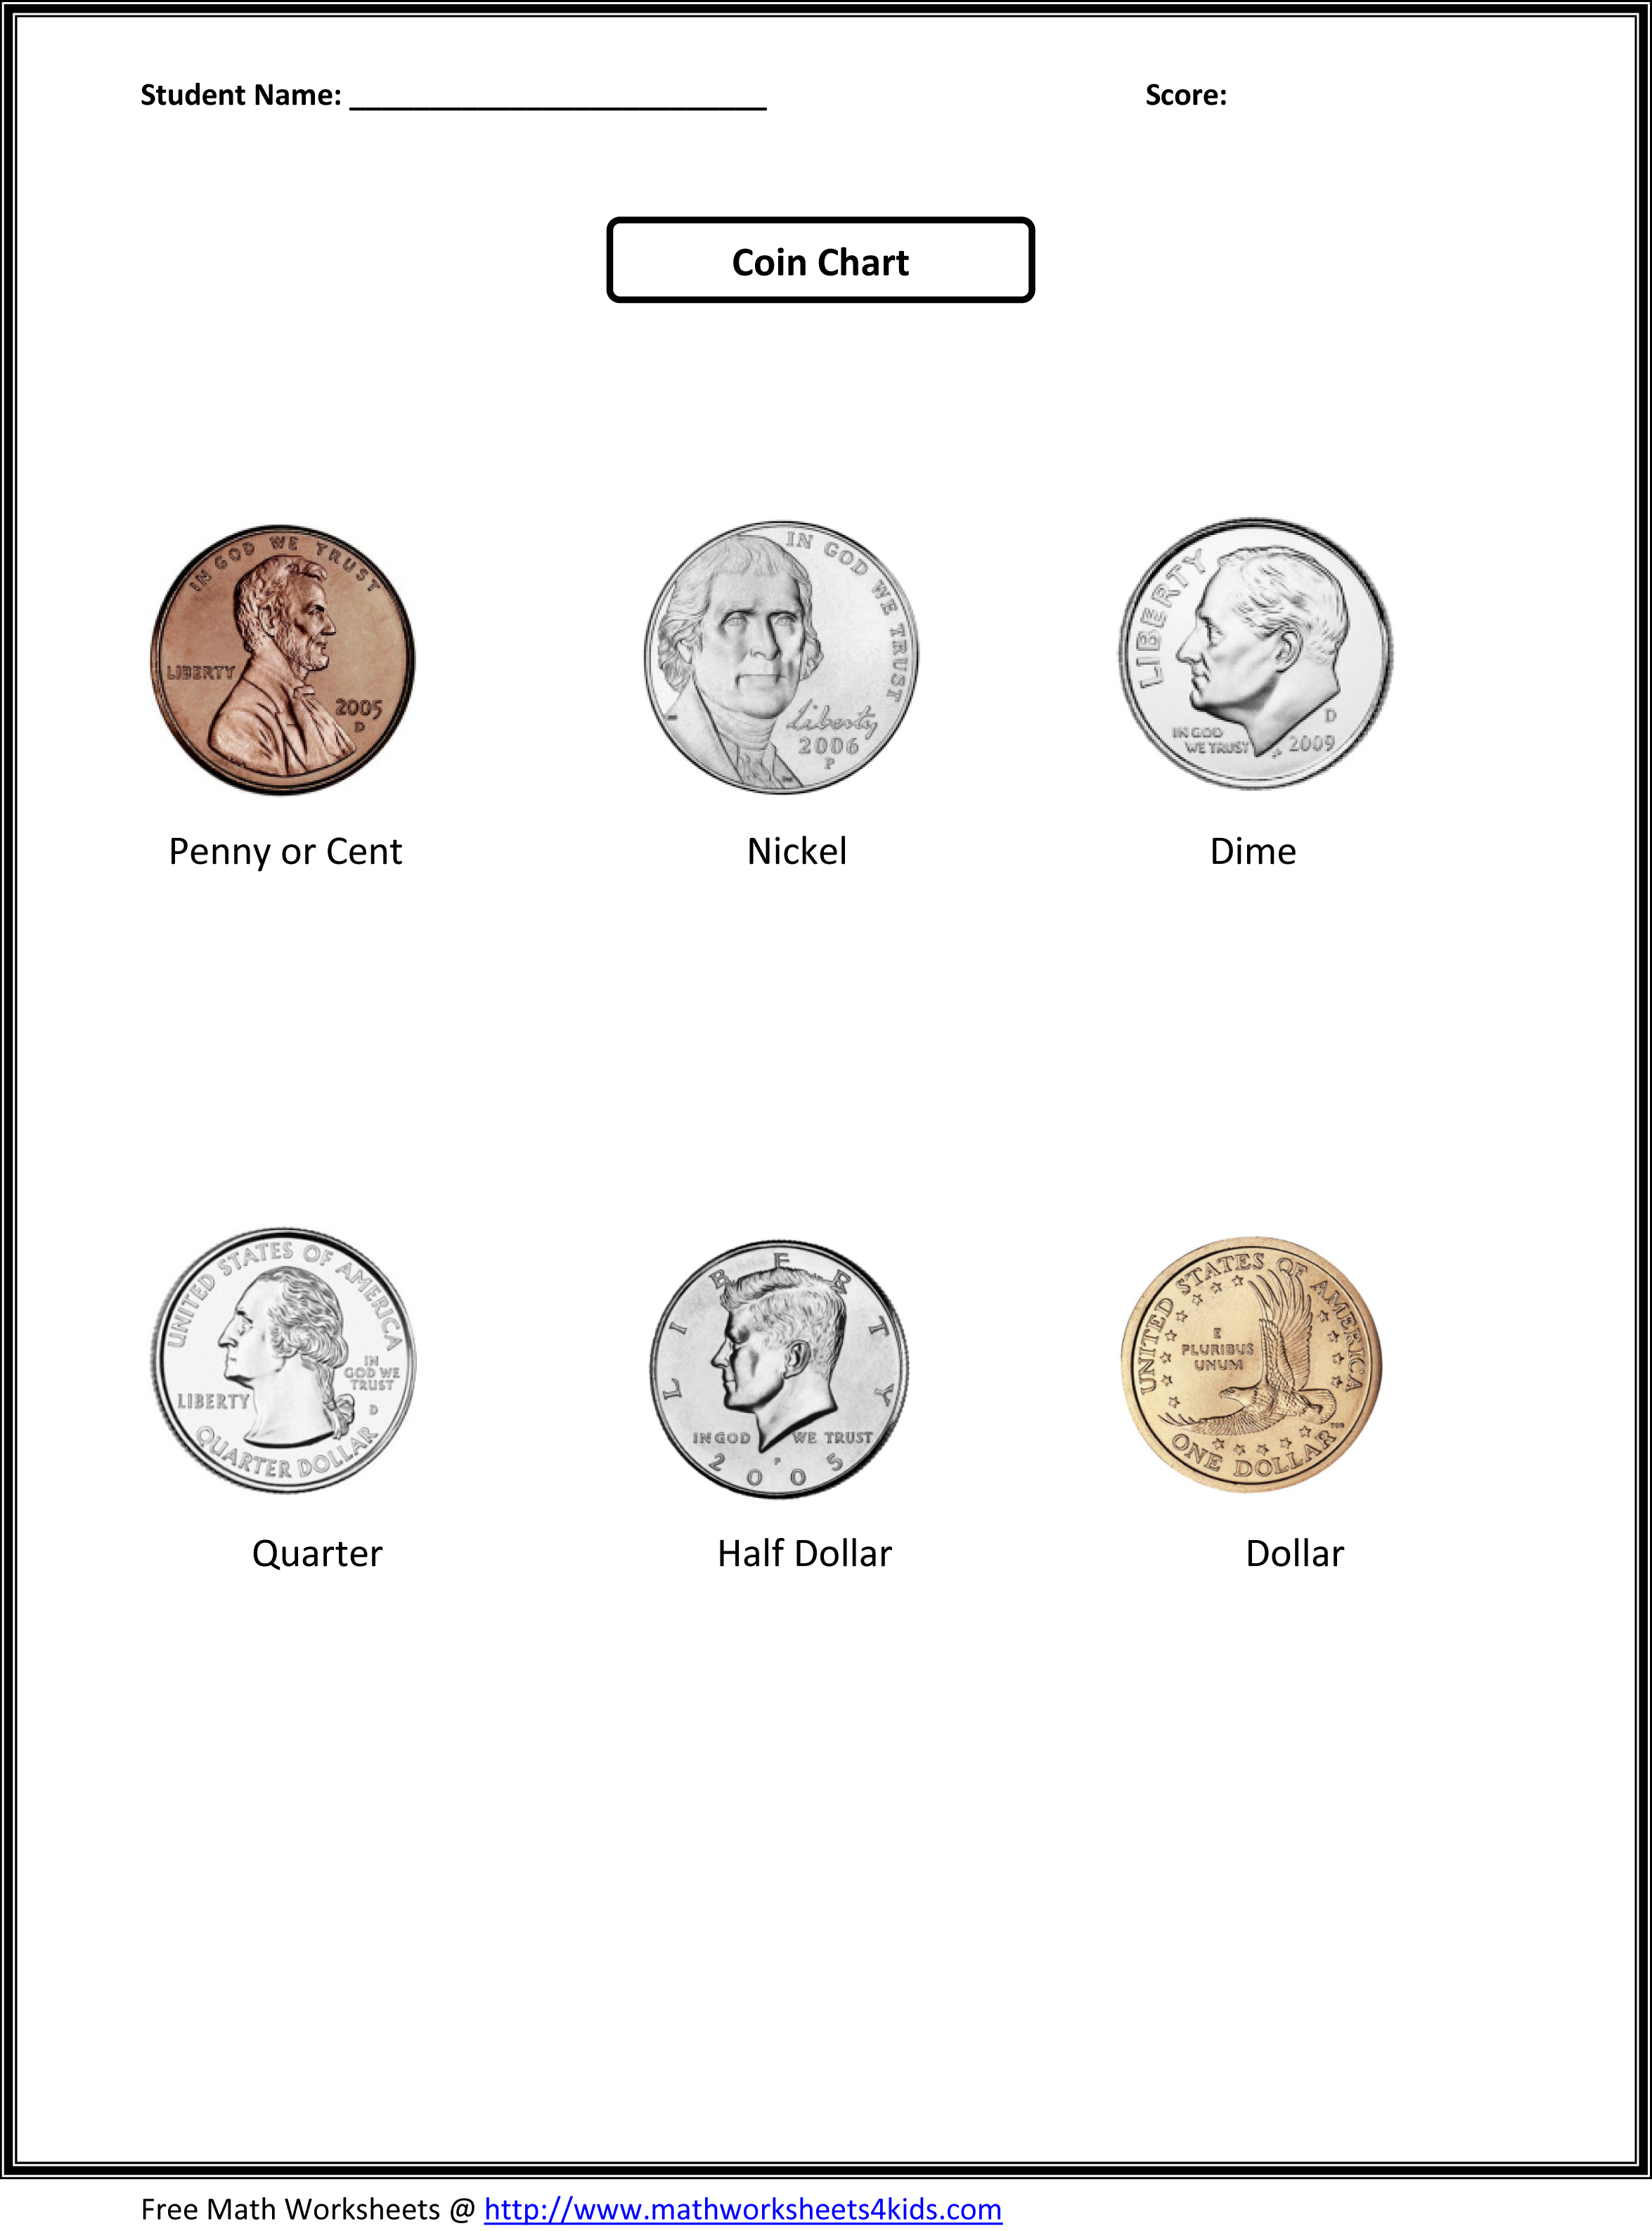 Coin Sheets For Kindergarten Csno Coin Quest Builder